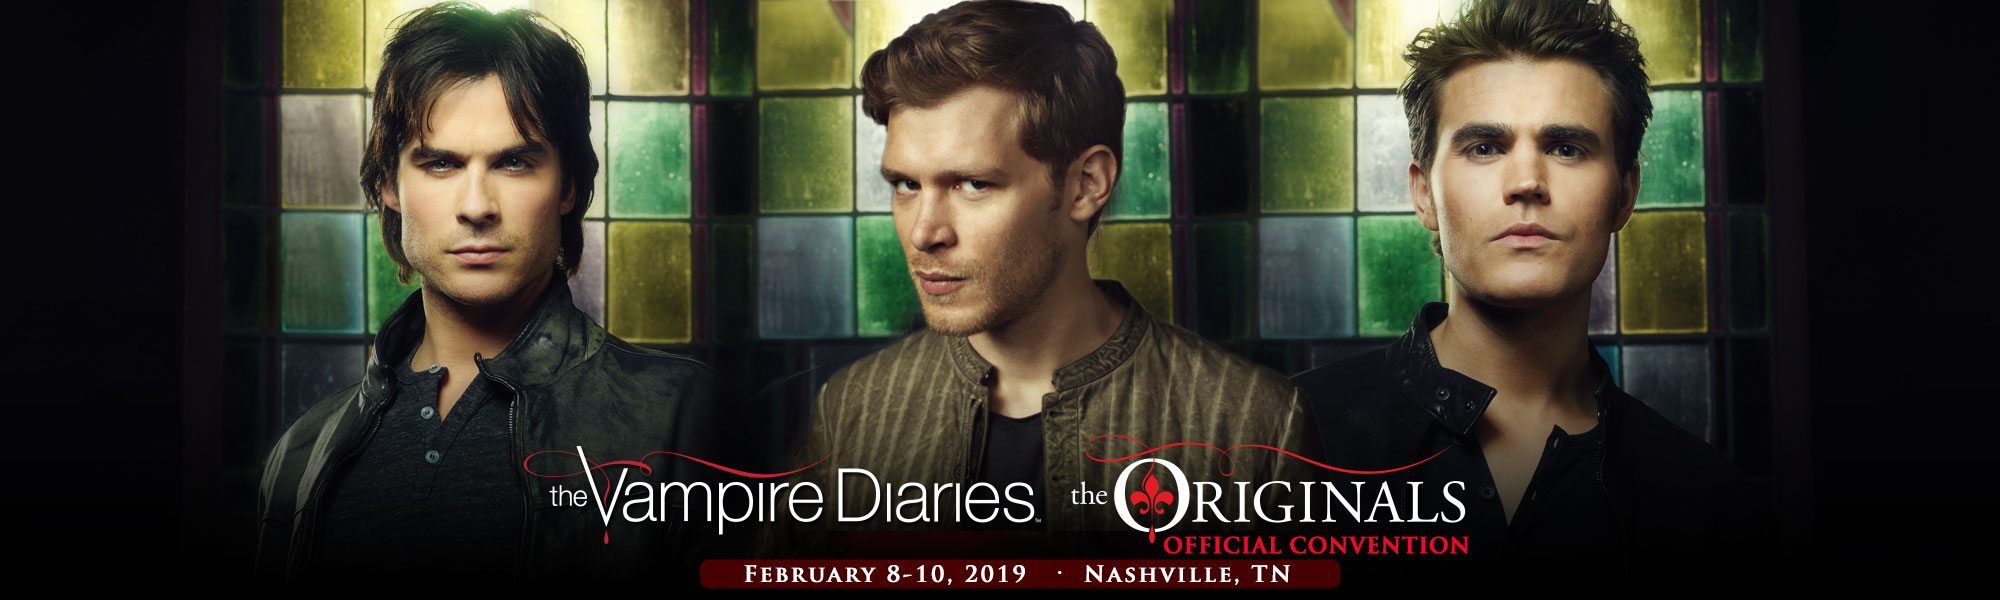 The Vampire Diaries and The Originals Official Convention Nashville, TN February 8-10, 2019